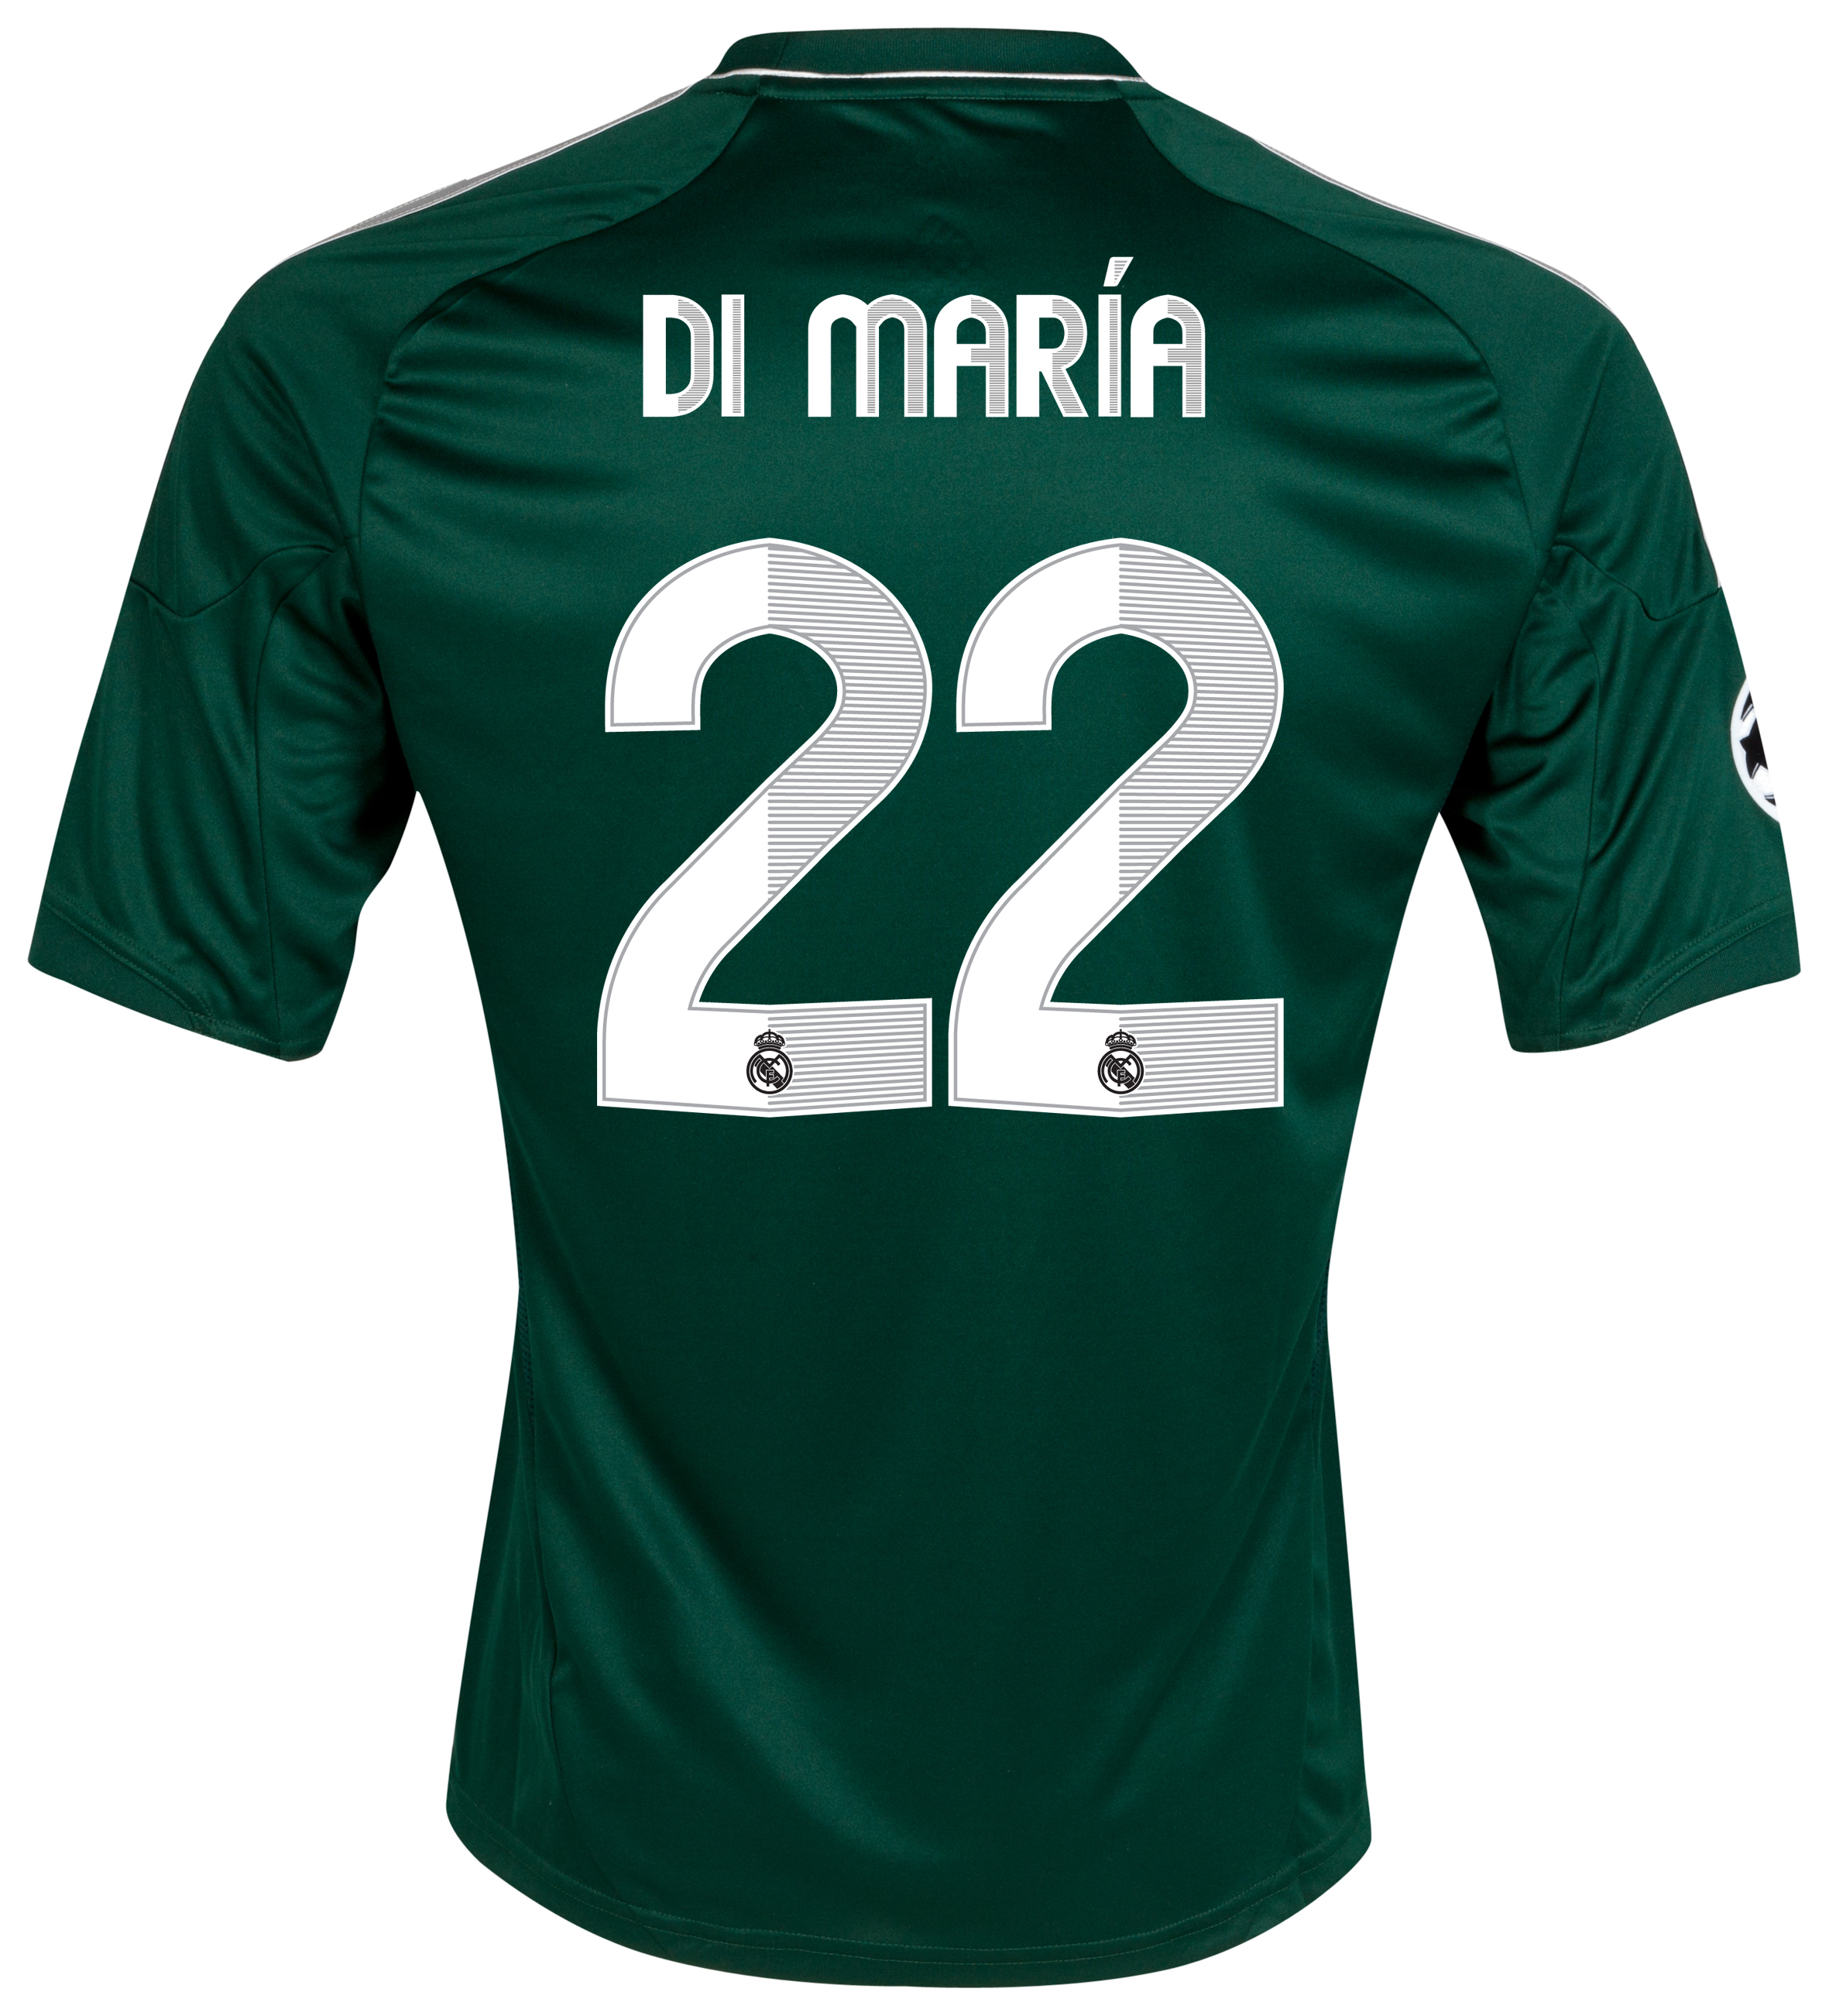 Real Madrid UEFA Champions League Third Shirt 2012/13 - Youths with Di María 22 printing